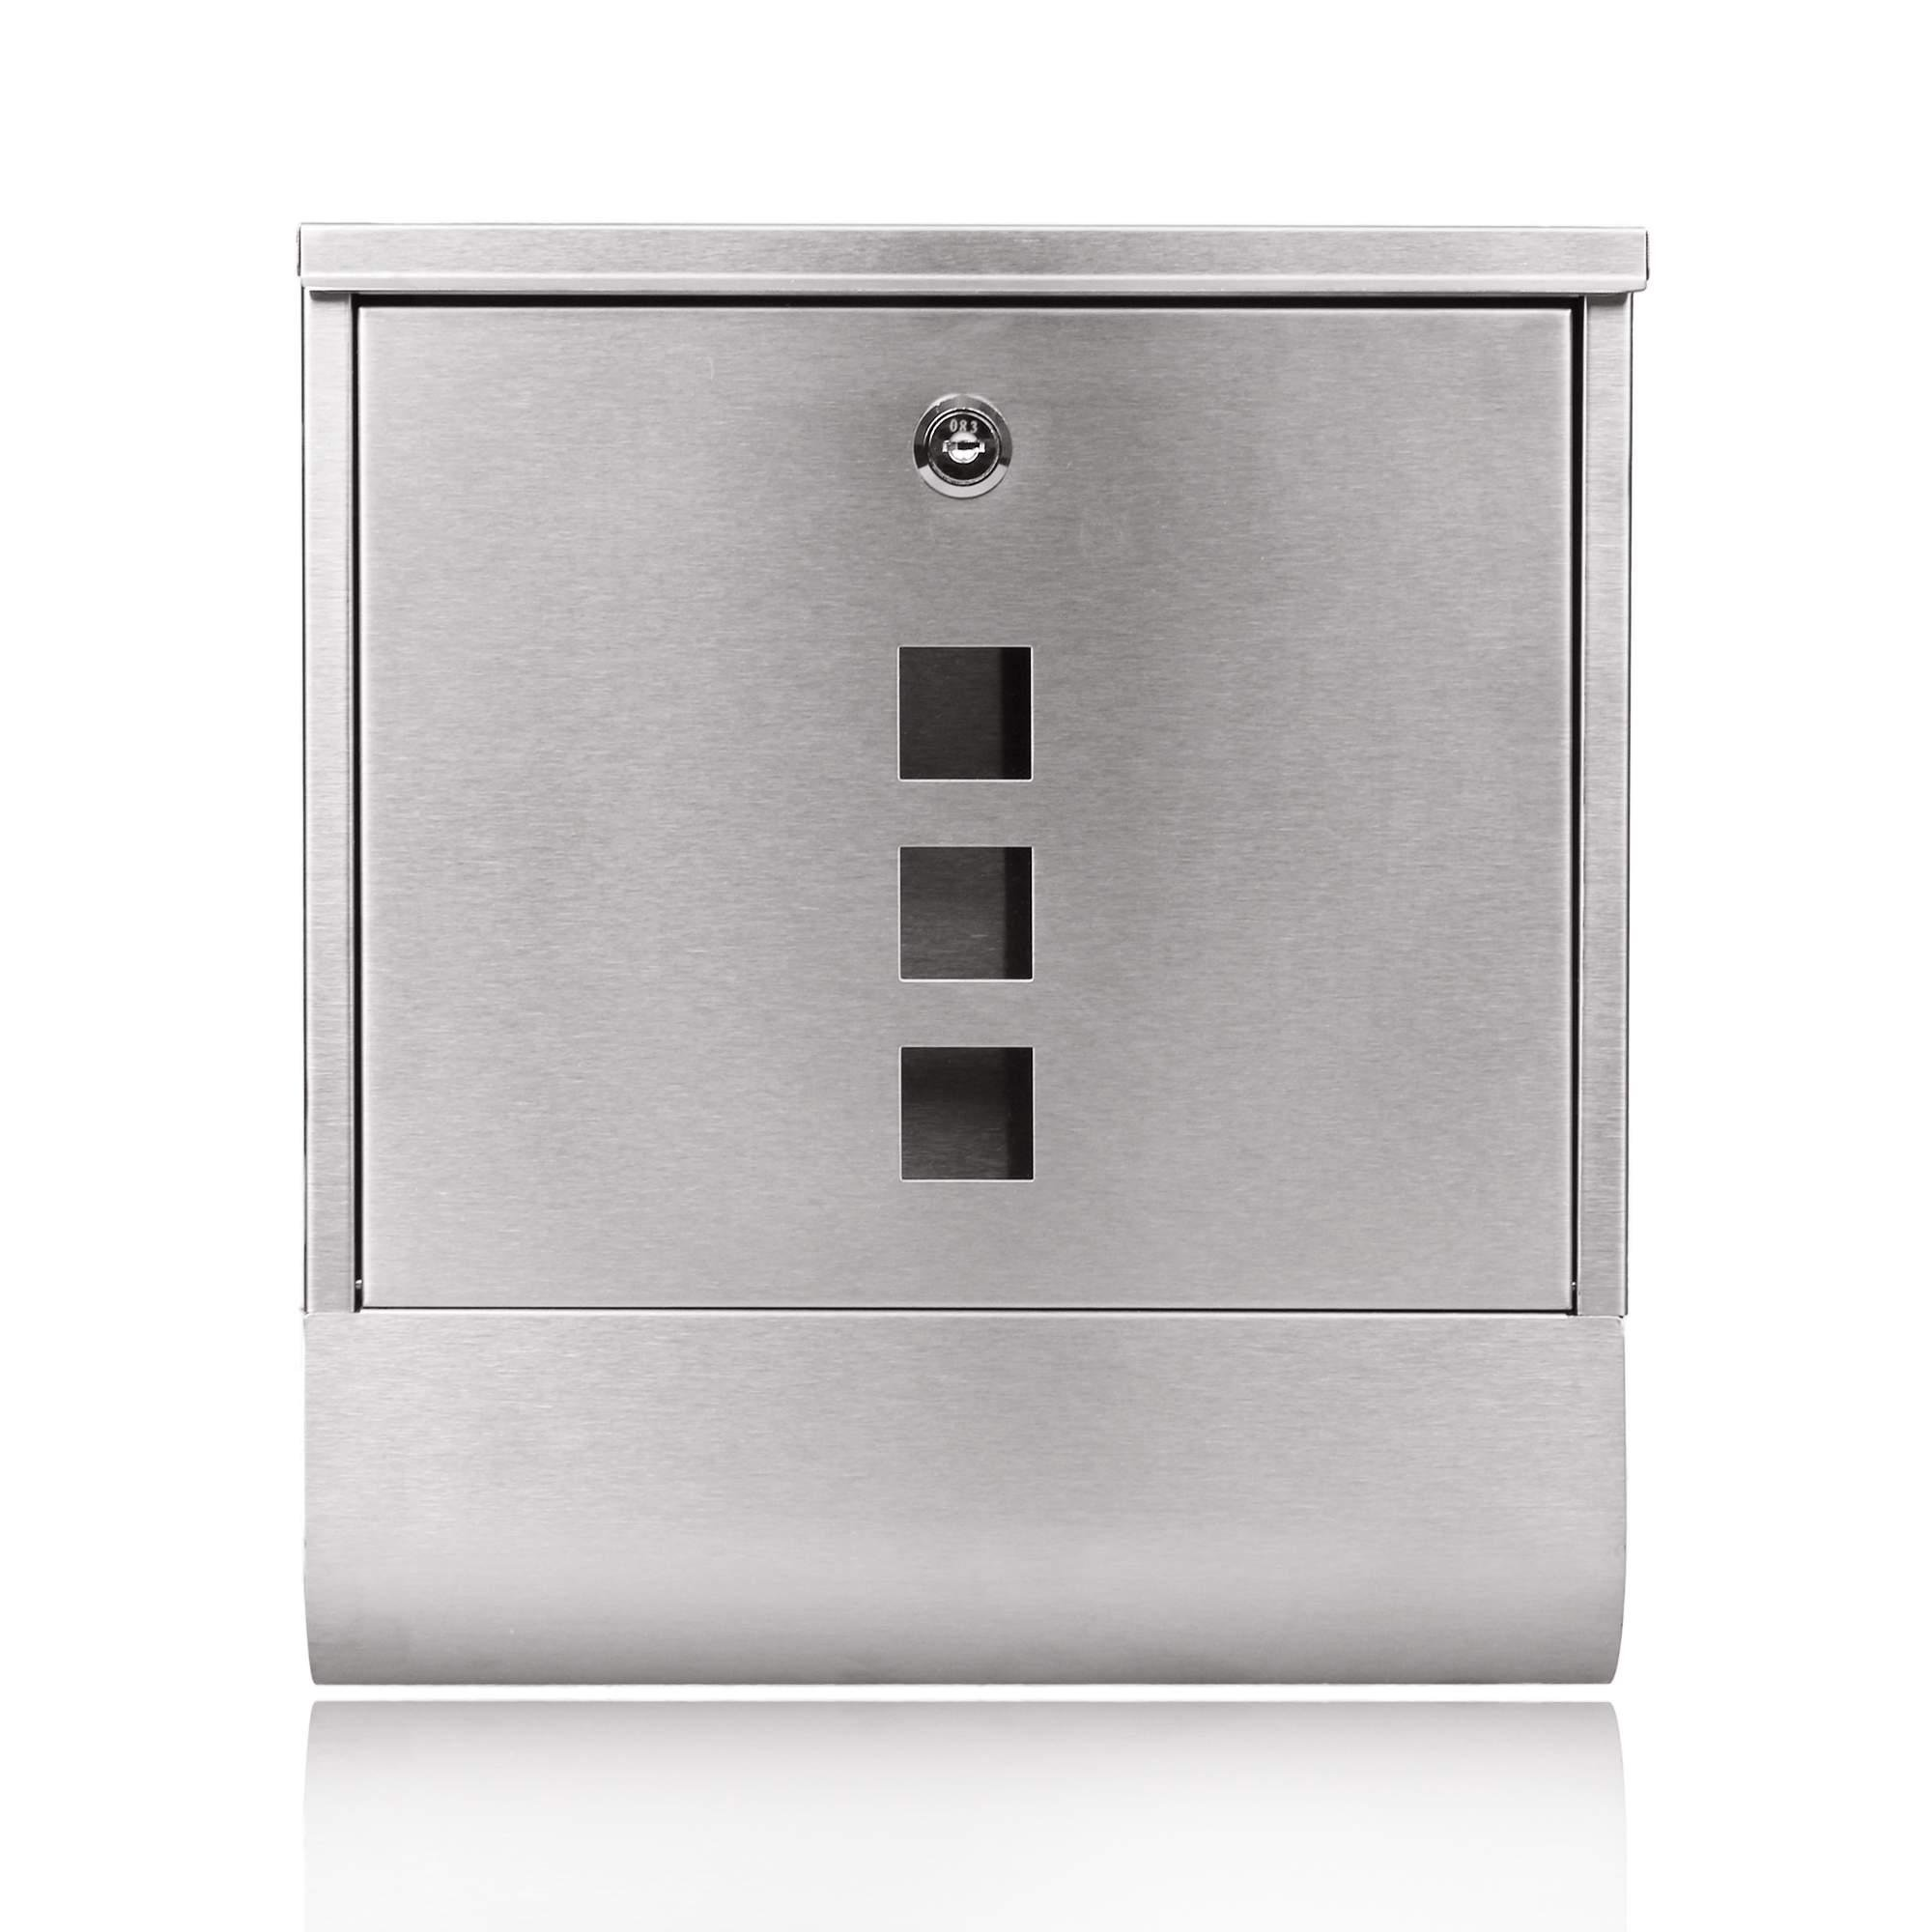 Stainless Steel Locking Mailbox Wall Mounted Letterbox [US Stock] by Rateim (Image #3)